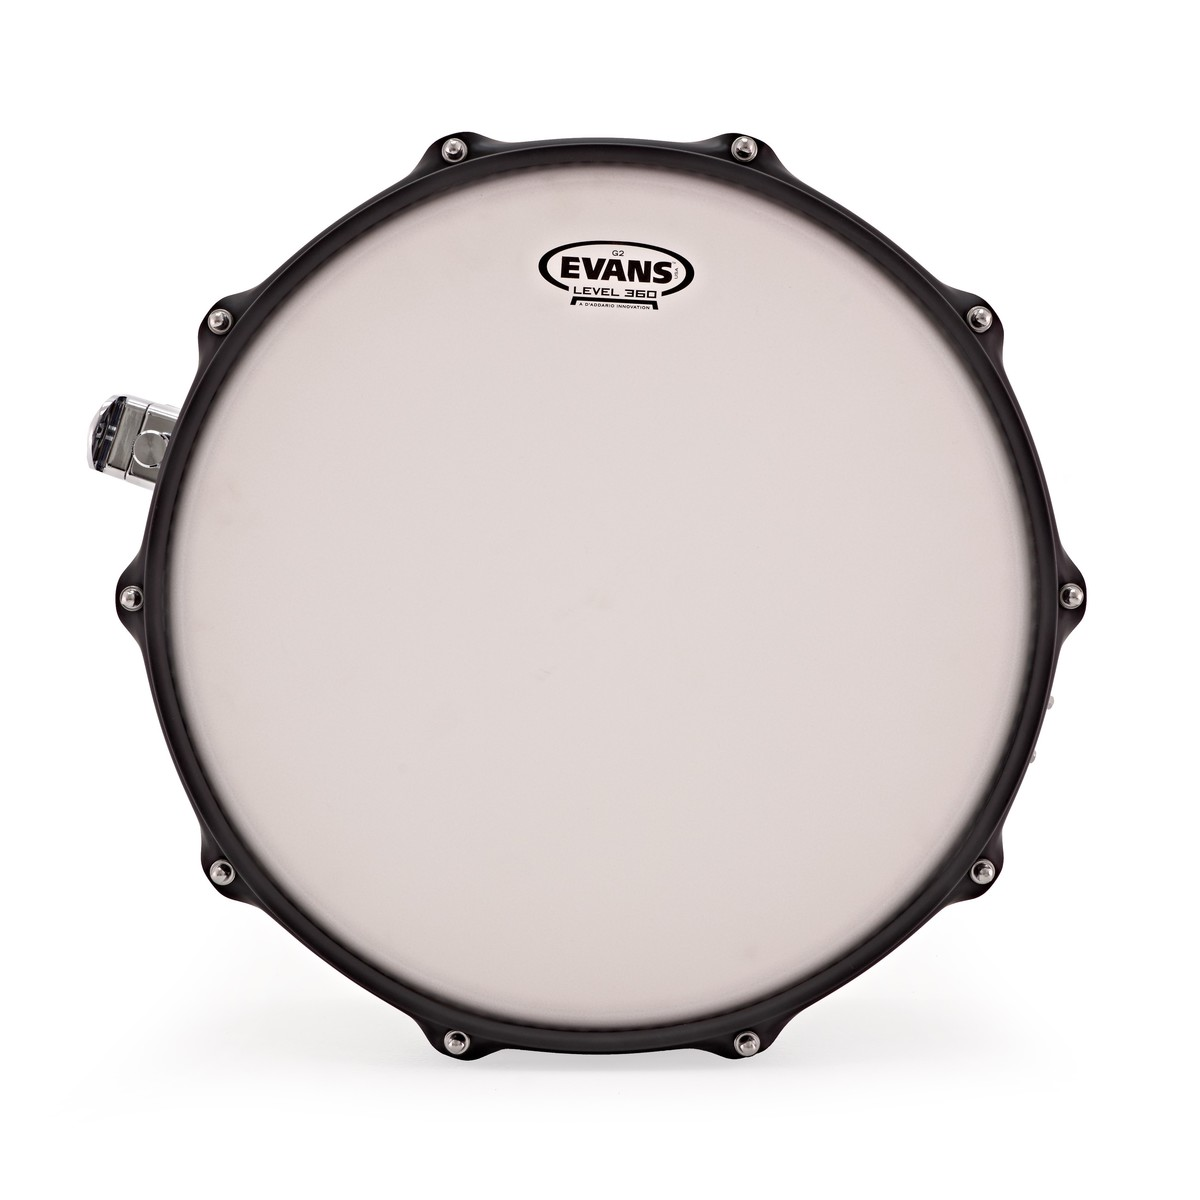 Drum Png (102+ images in Collection) Page 2.